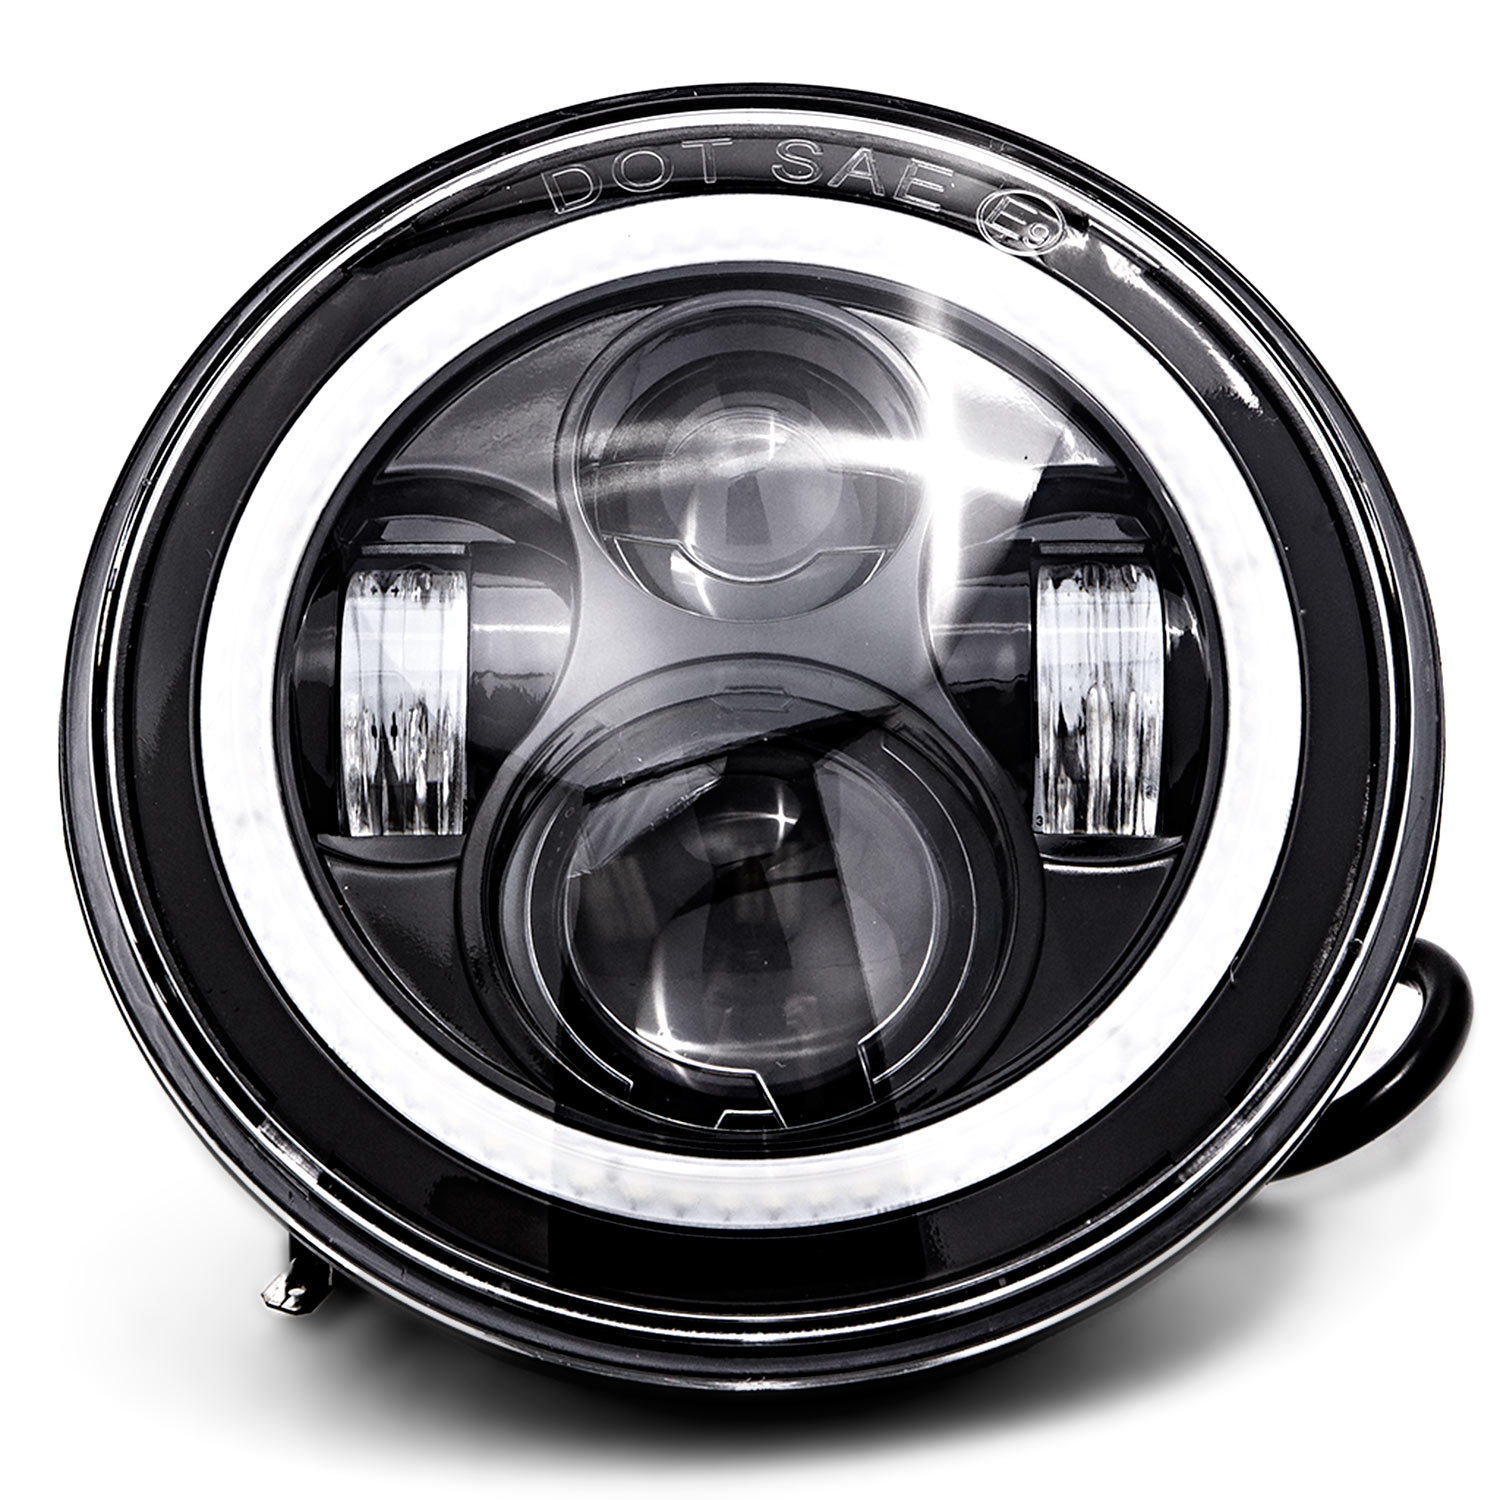 led 7 headlight bluetooth rgb halo ring light for harley davidson motorcycles for harley davidson road king efi flhri 2000 2006 [ 1500 x 1500 Pixel ]